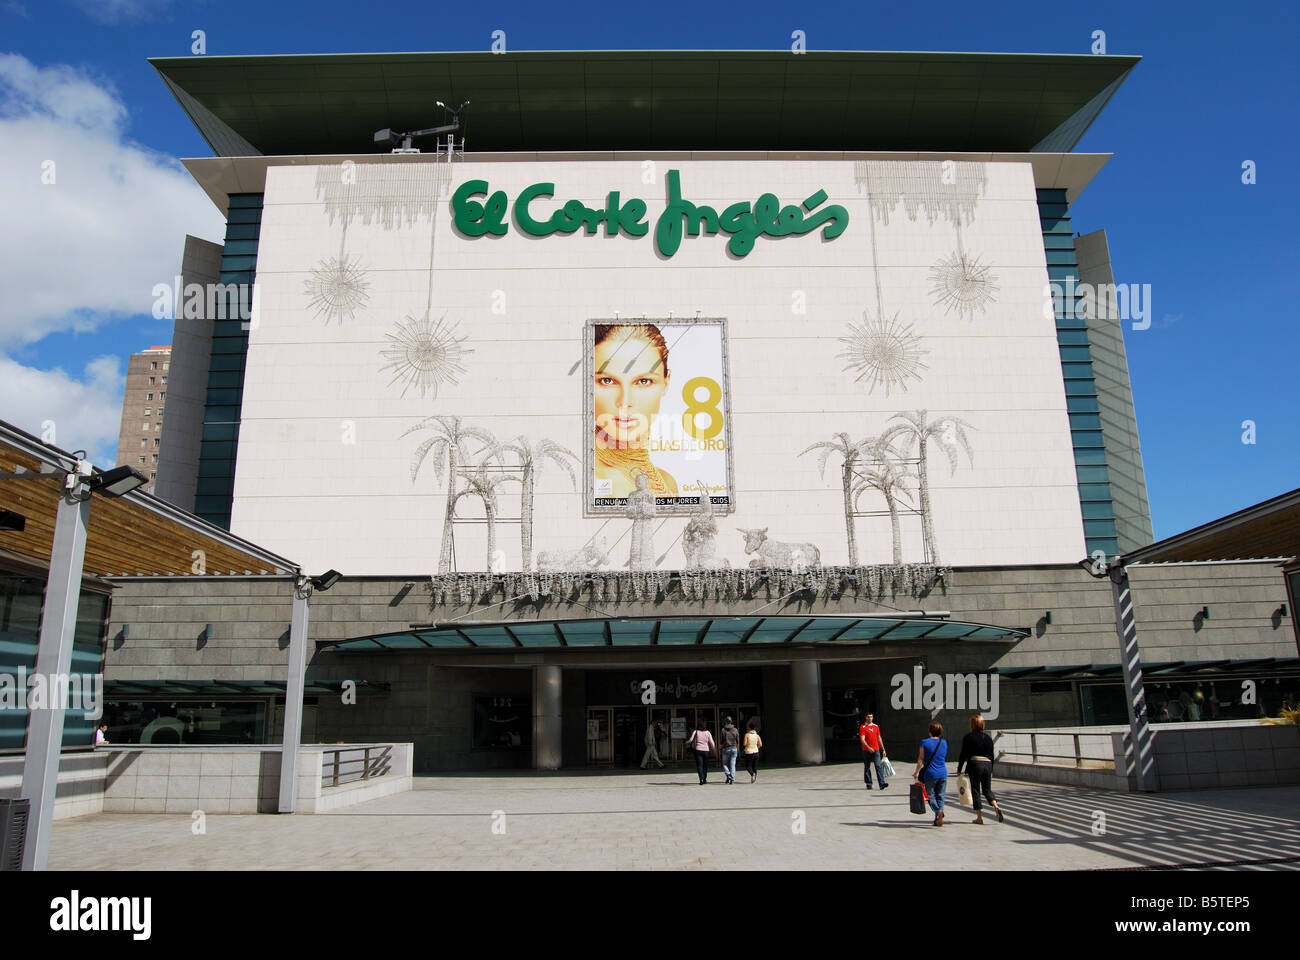 e466233322d El Corte Ingles Department Store